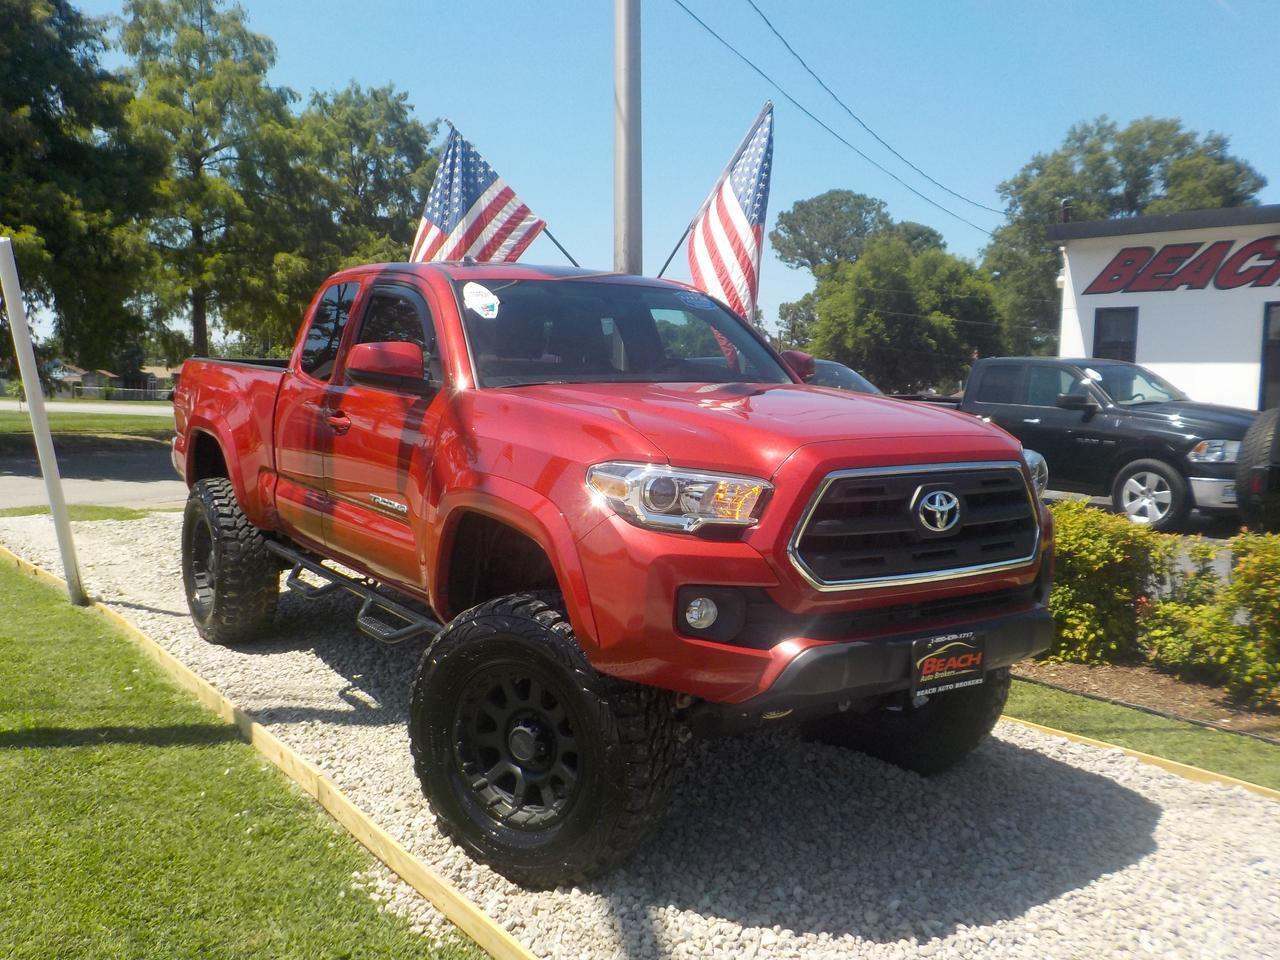 2016 Toyota Tacoma Lifted >> 2016 Toyota Tacoma Sr5 Access Cab 4x4 Warranty Lifted 2 7l Bed Liner A C Low Miles